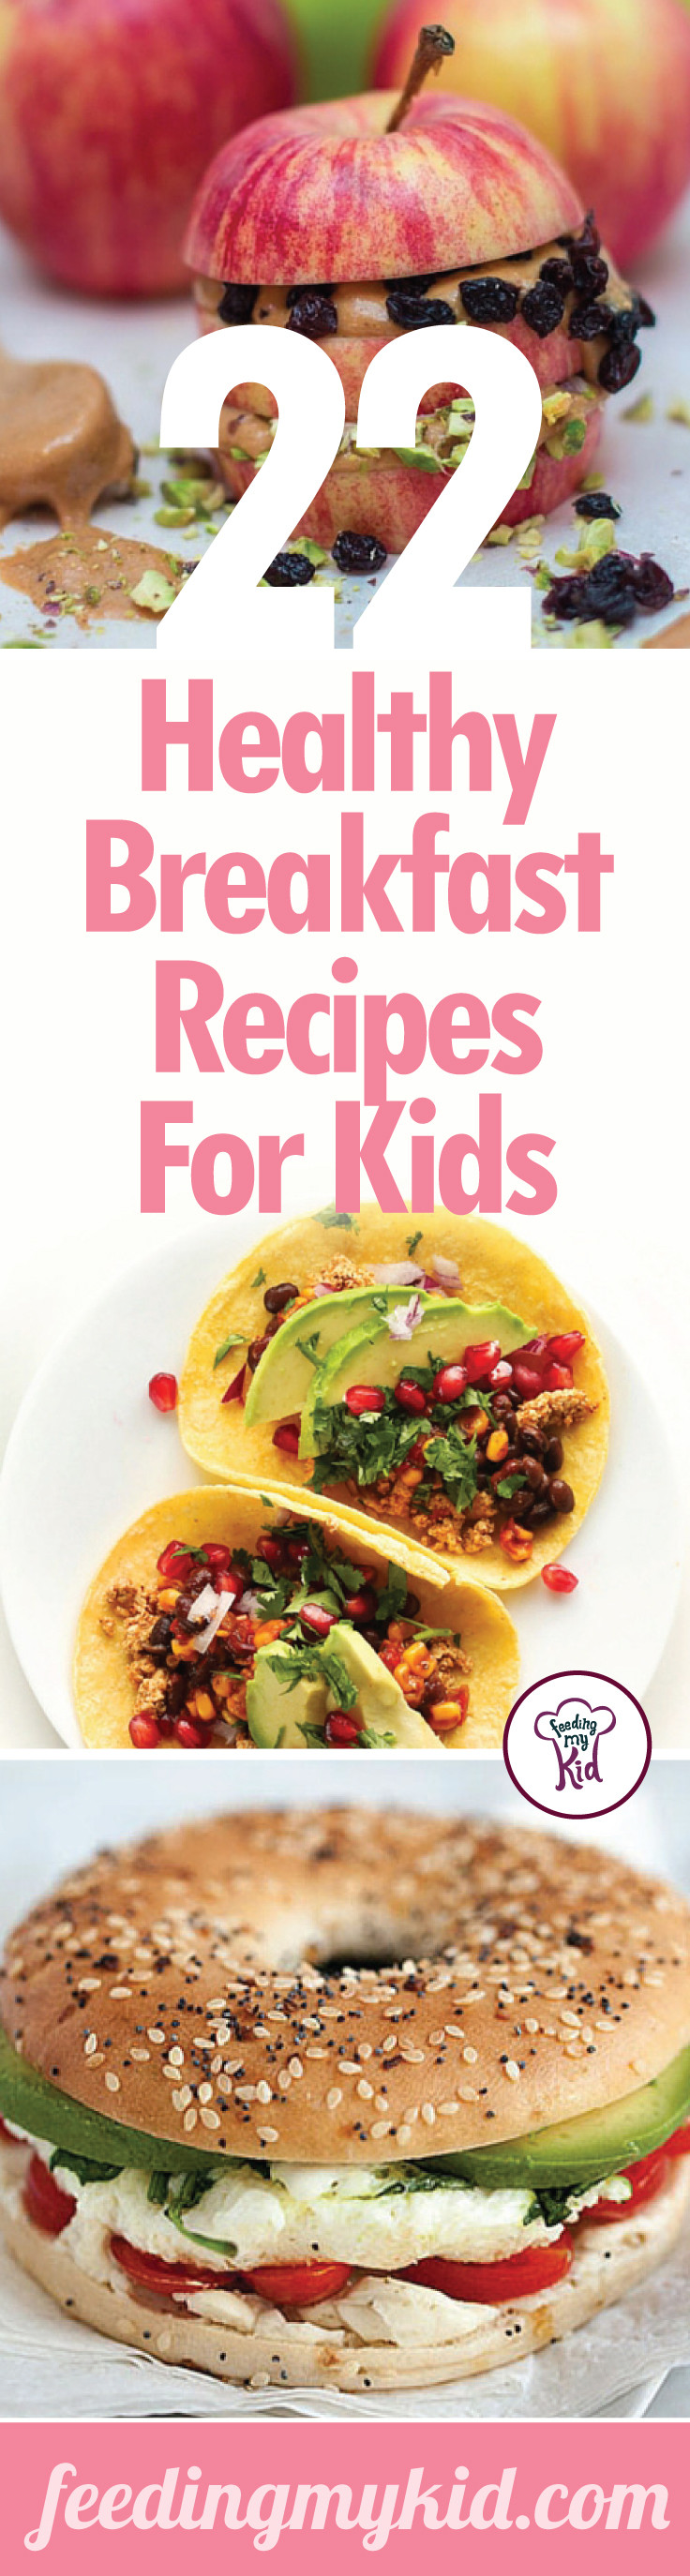 Healthy Breakfast For Toddlers Recipes  22 Healthy Breakfast Recipes For Kids Simple and Delicious